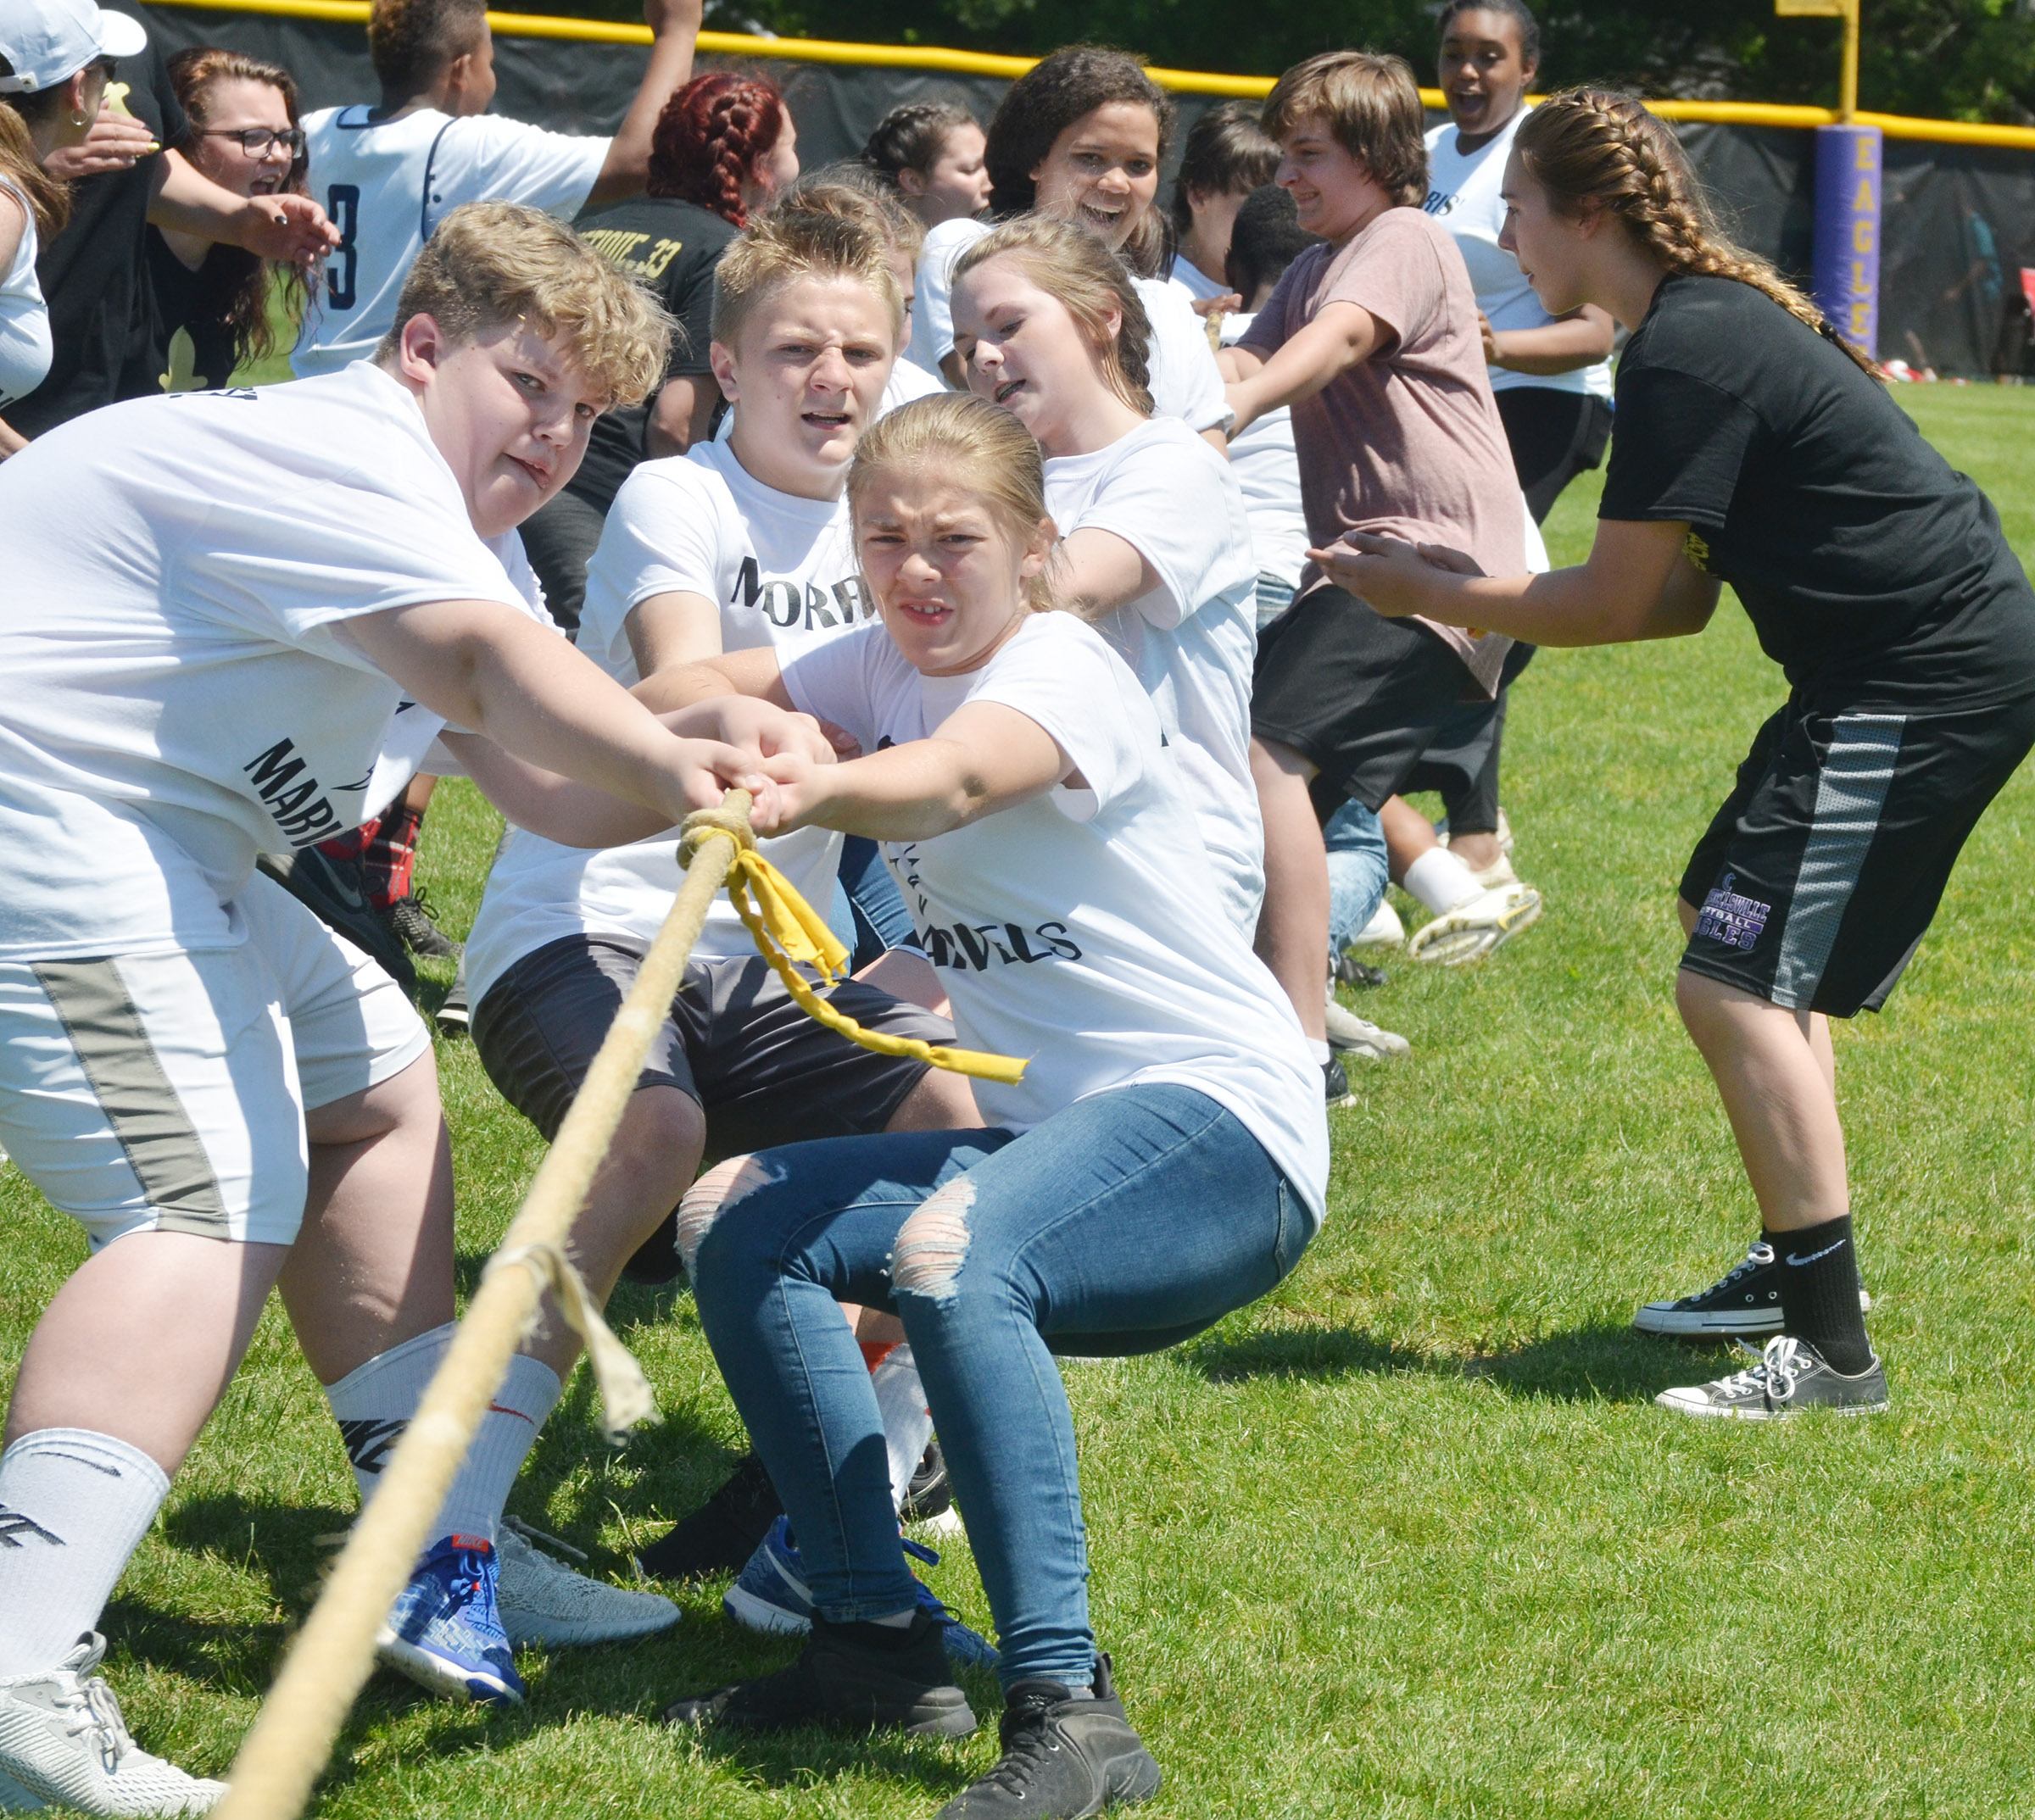 CMS eighth-graders Noah Mardis, at left, and Emily Kerns lead their classmates as they compete in the tug of war battle.